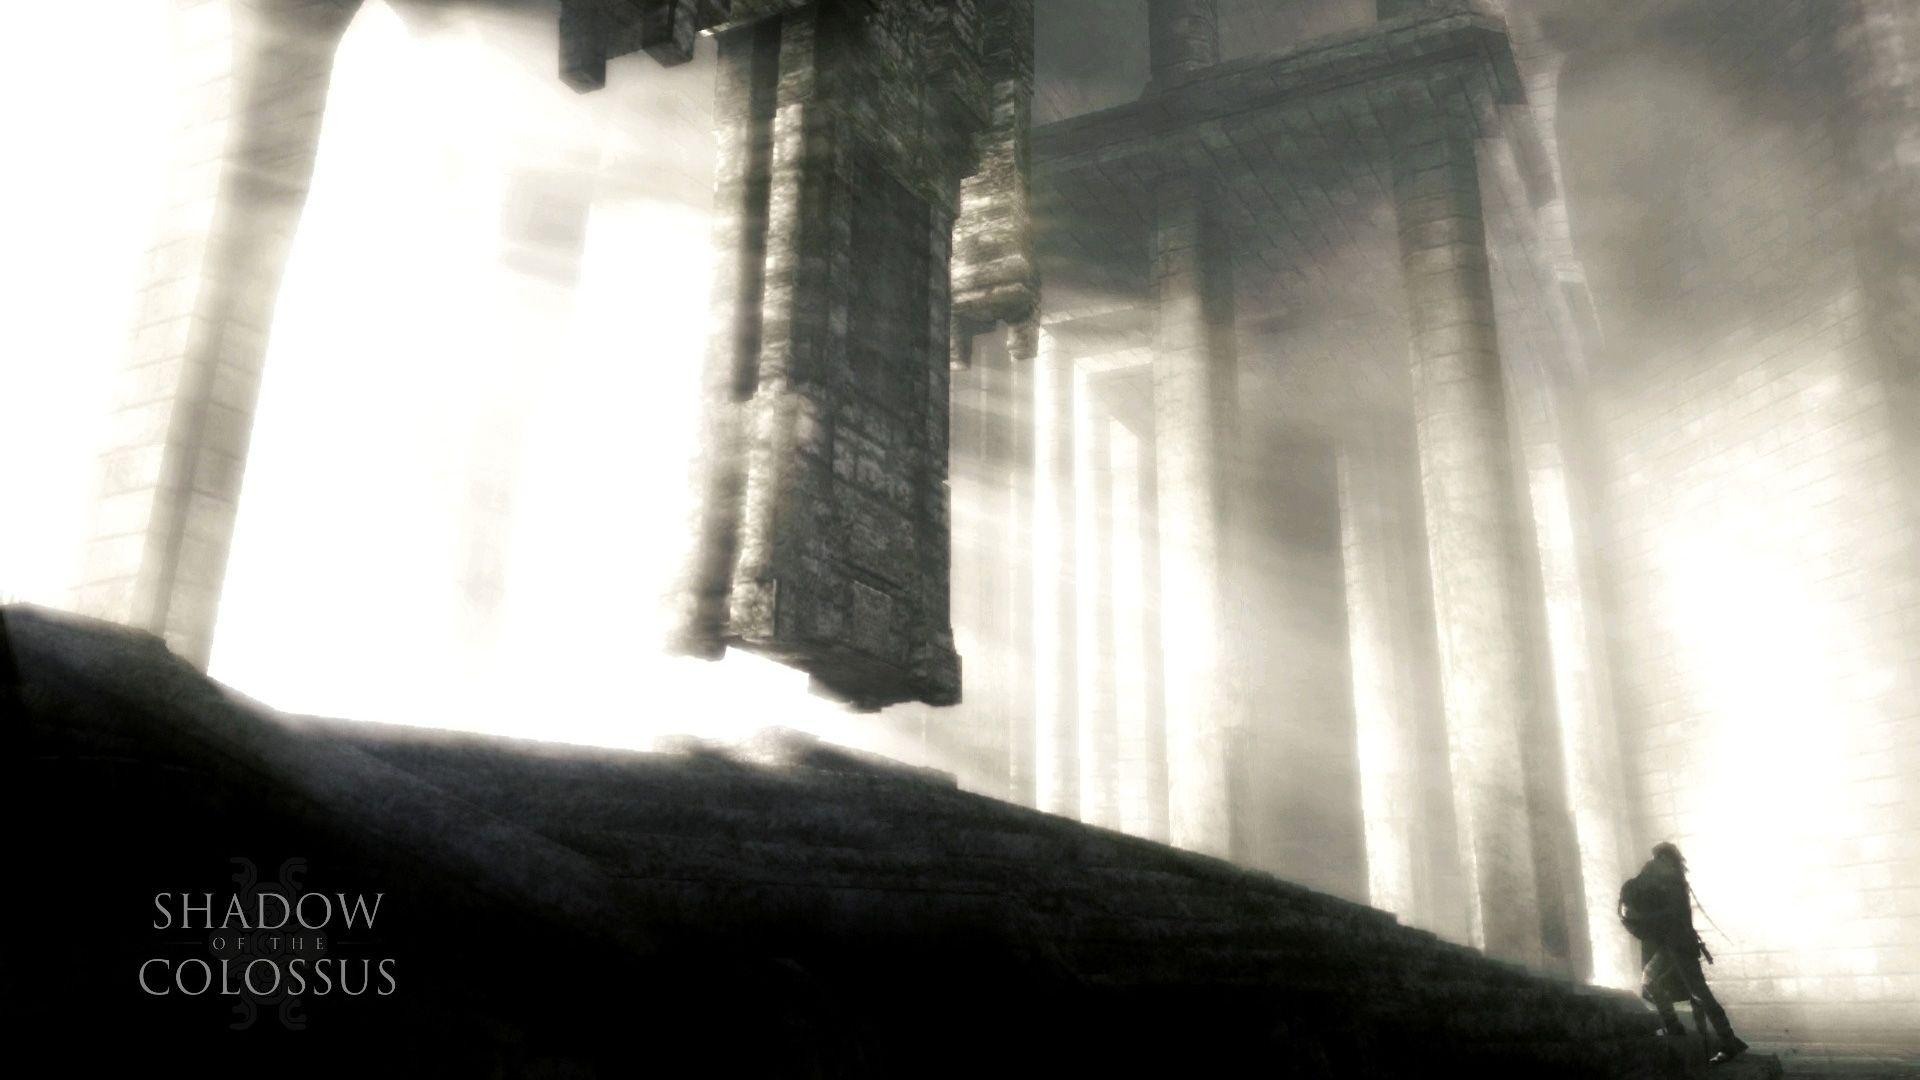 Wallpaper #3, wallpaper from Shadow of the Colossus - gamepressure.com